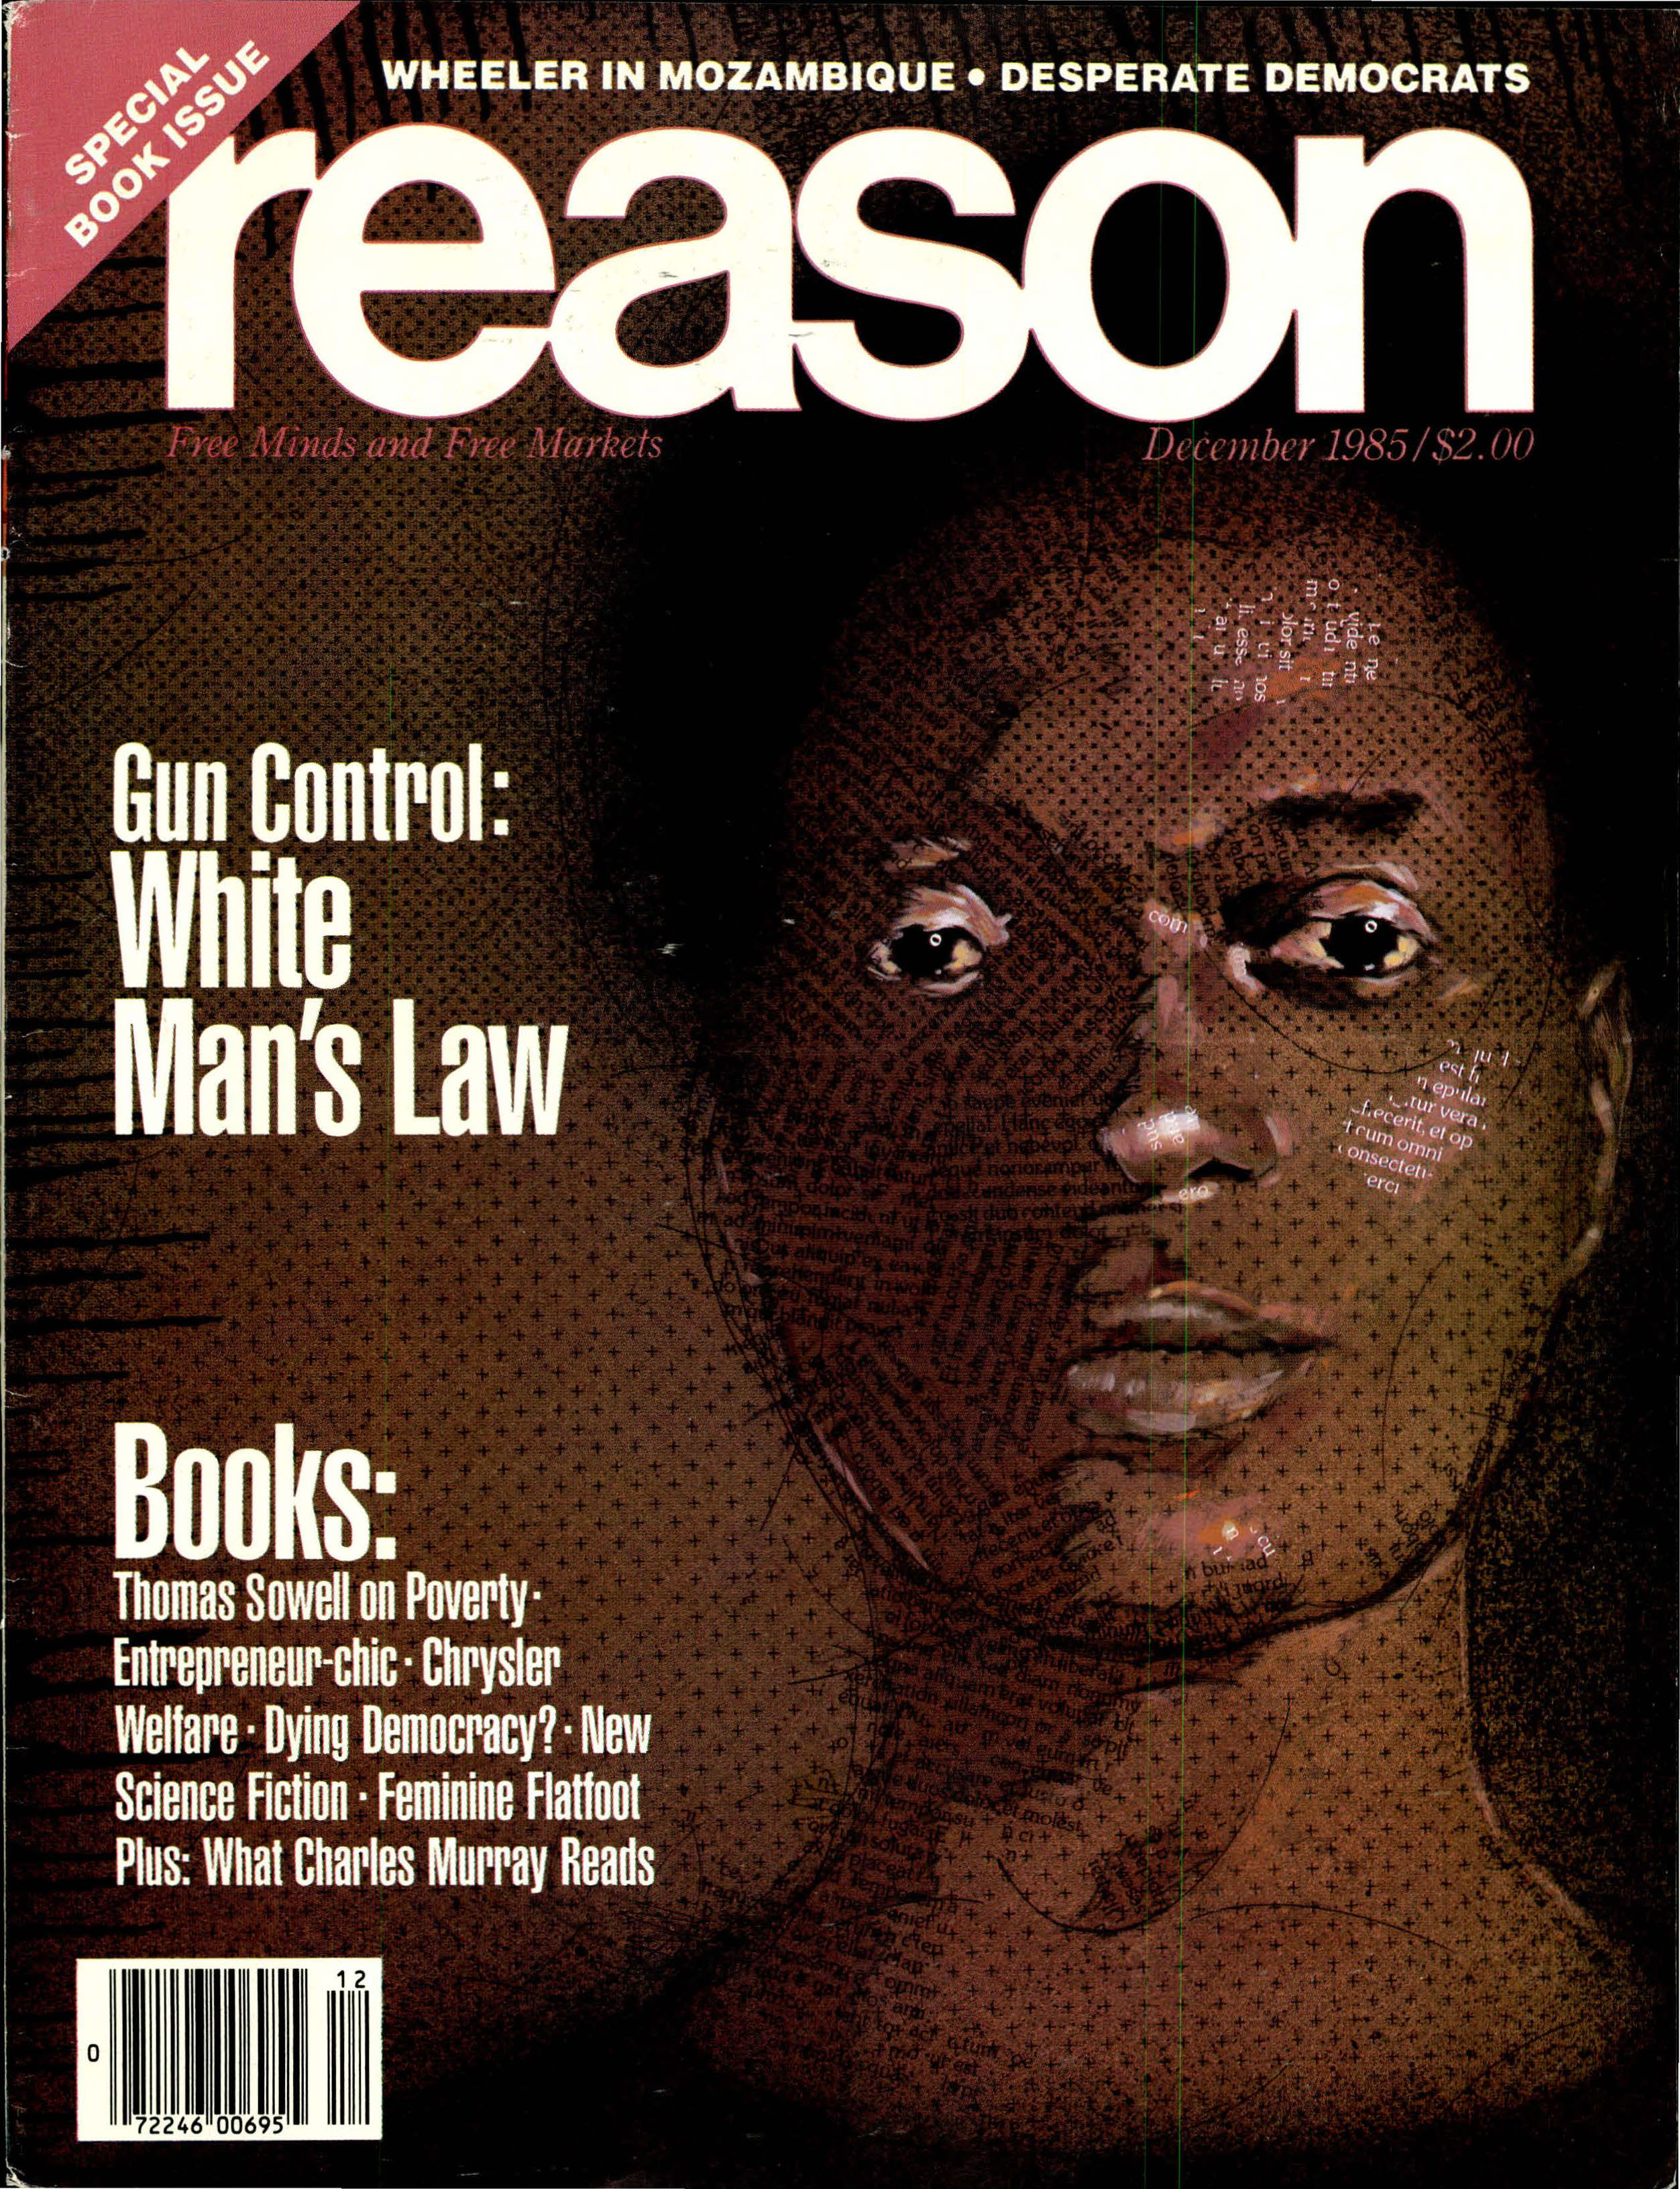 Reason Magazine, December 1985 cover image